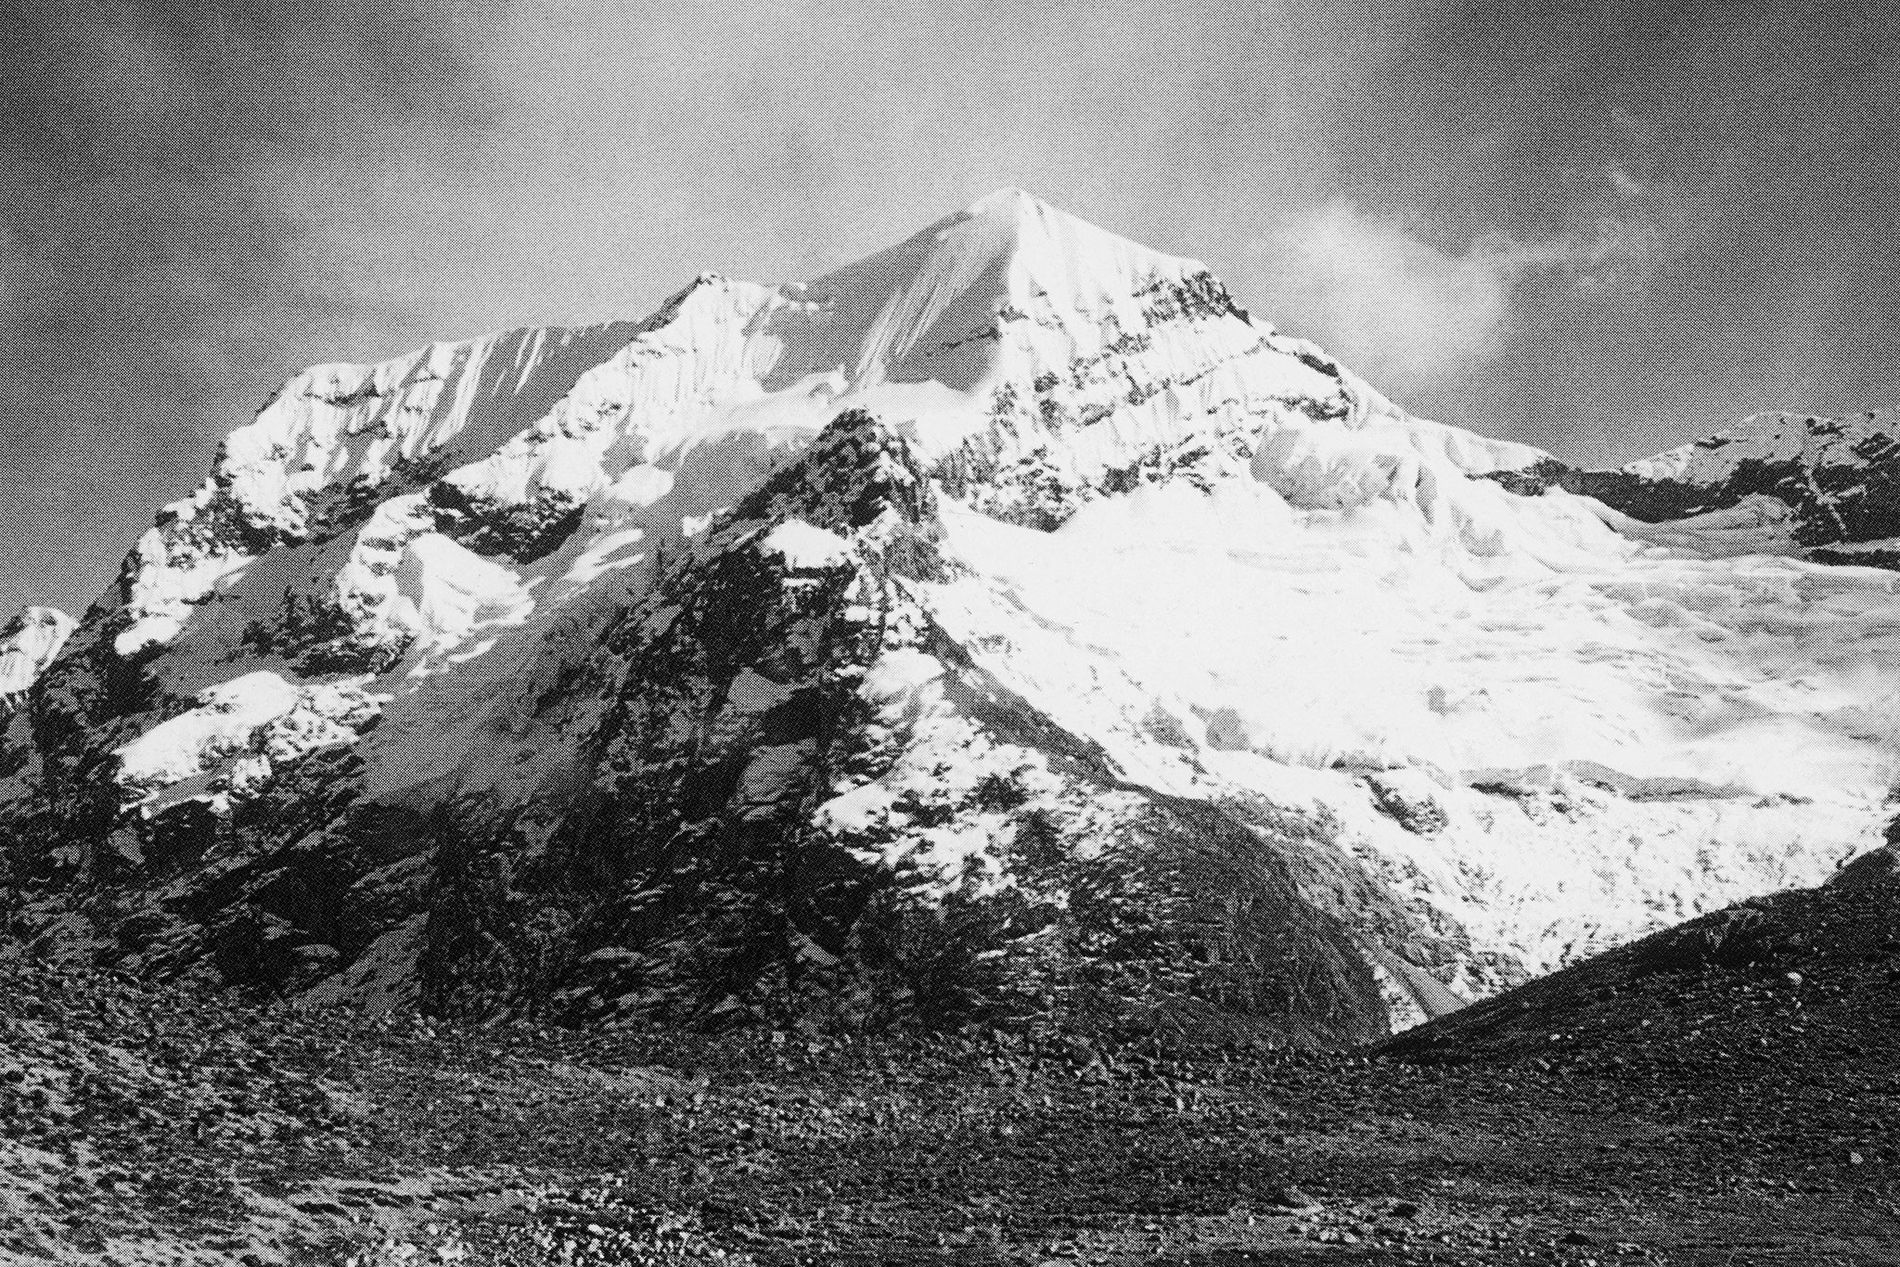 Snow and ice blanket Guardian Peak in January 1951.